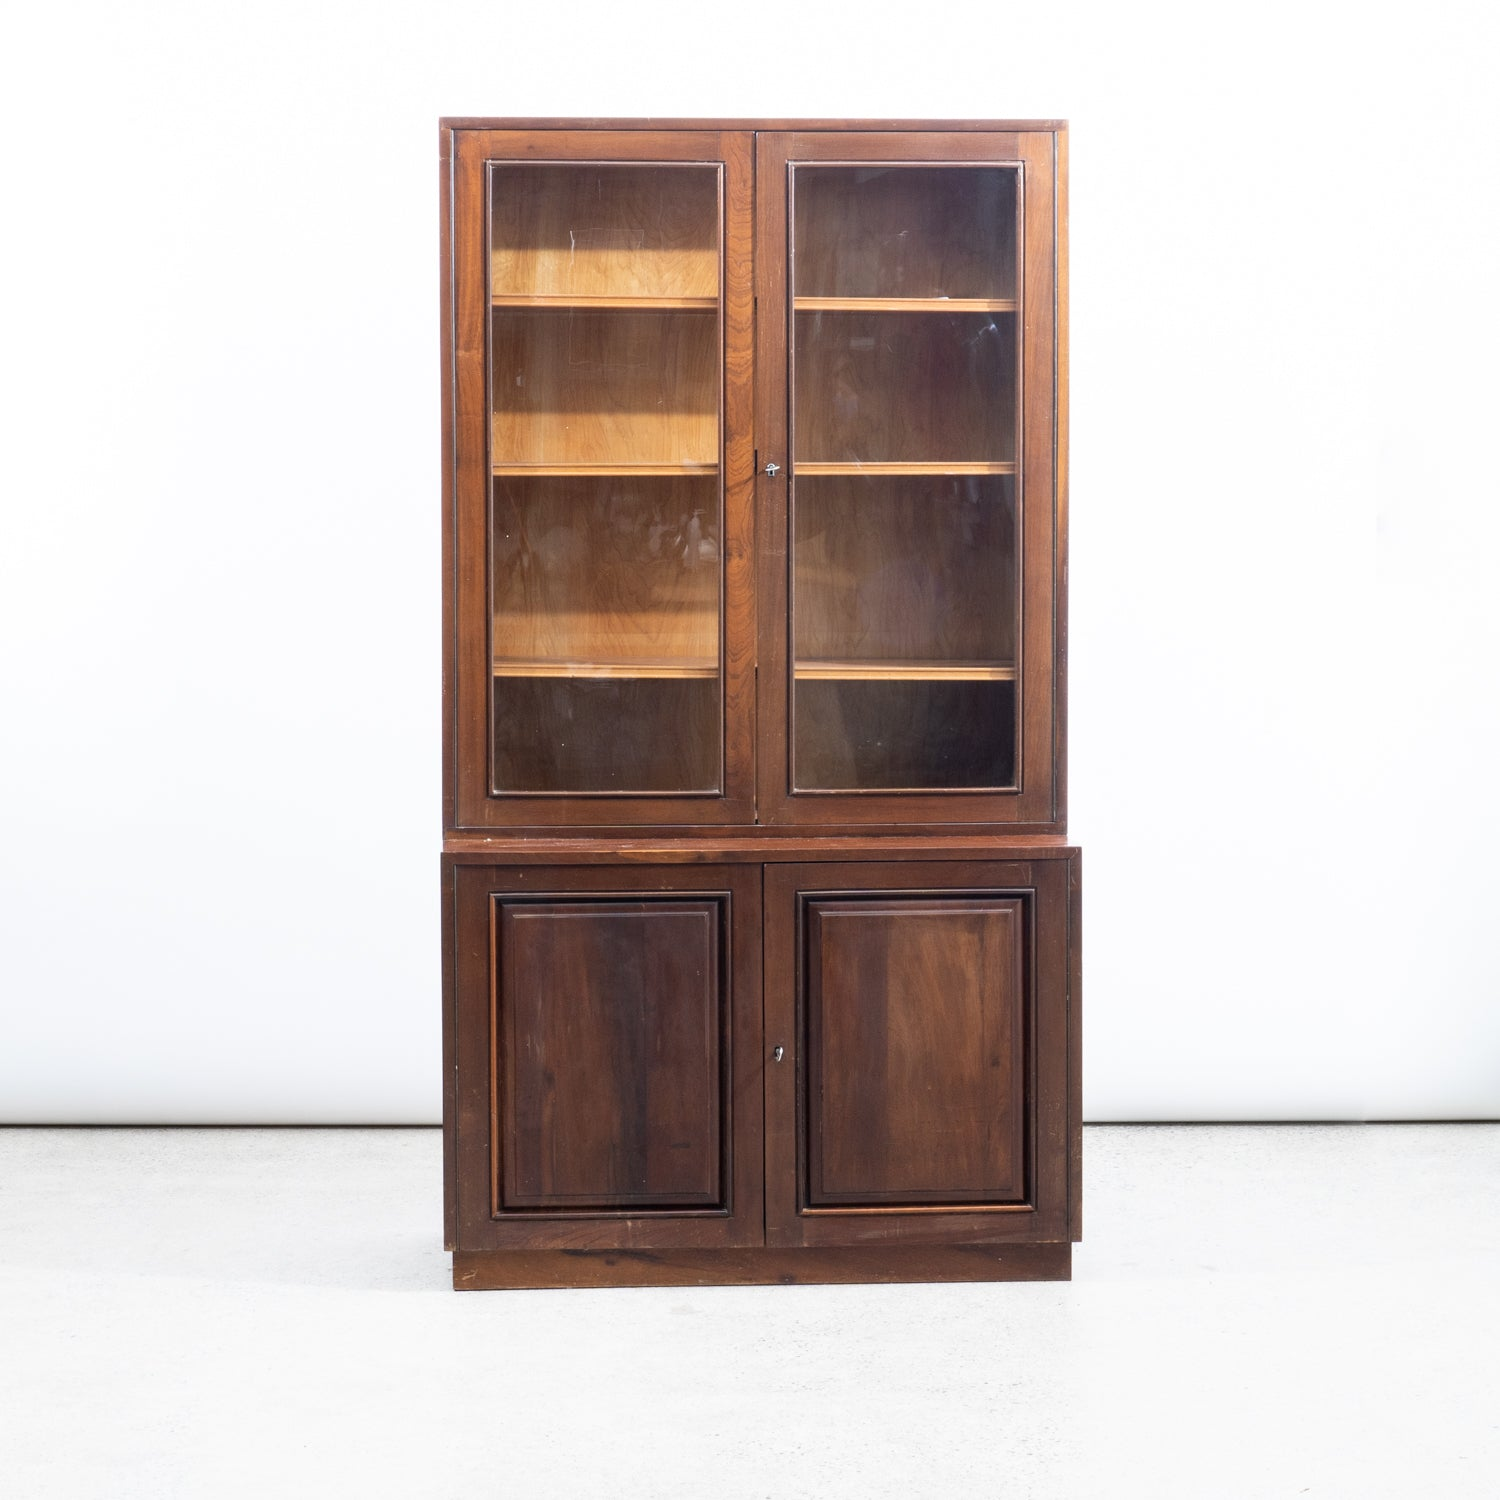 Antique Display Cabinet / Hutch